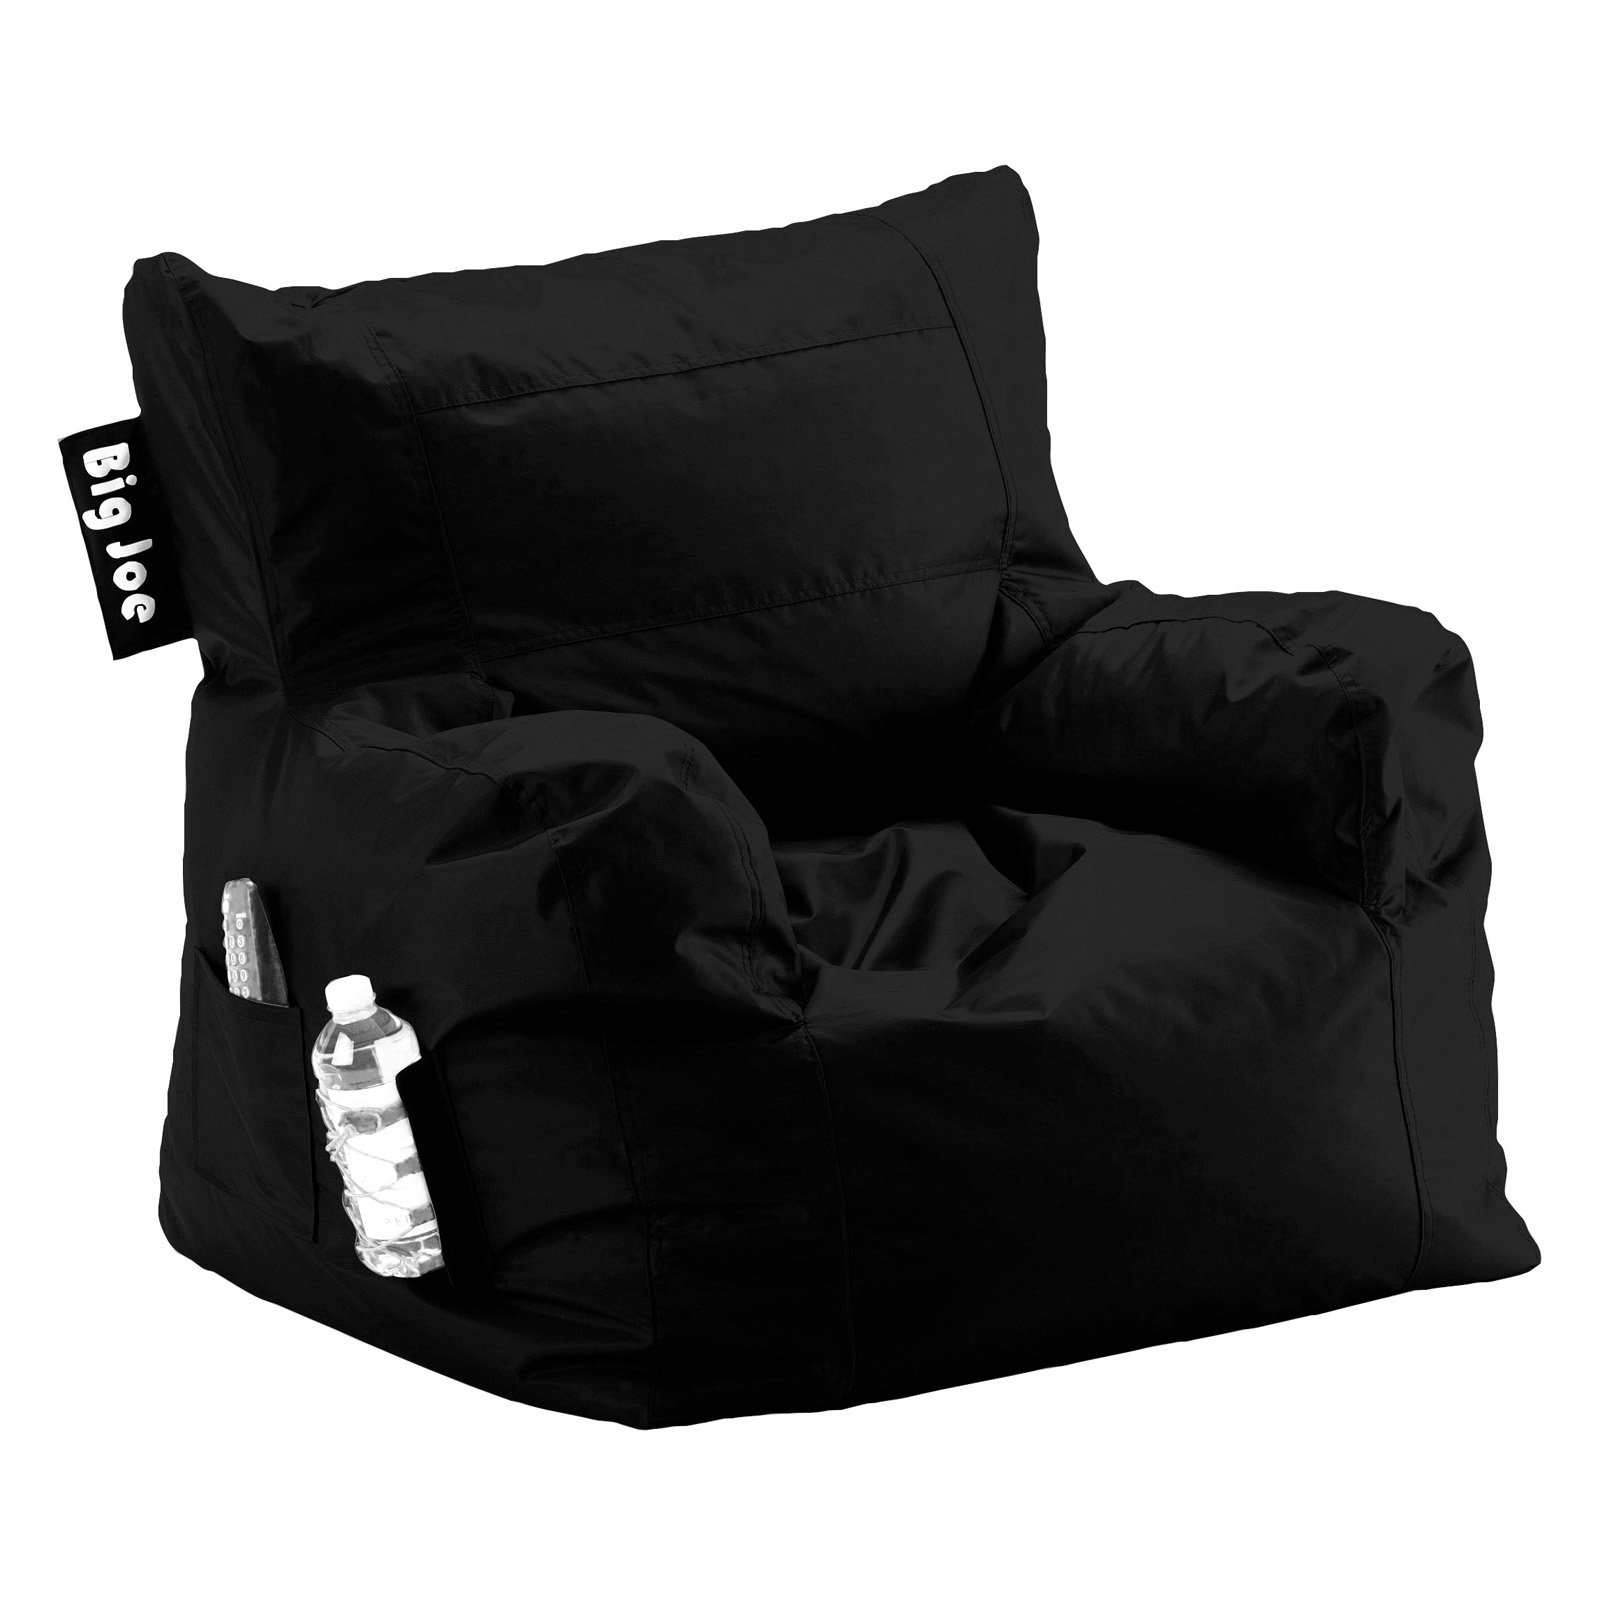 Gentil Big Joe Dorm Bean Bag Chair